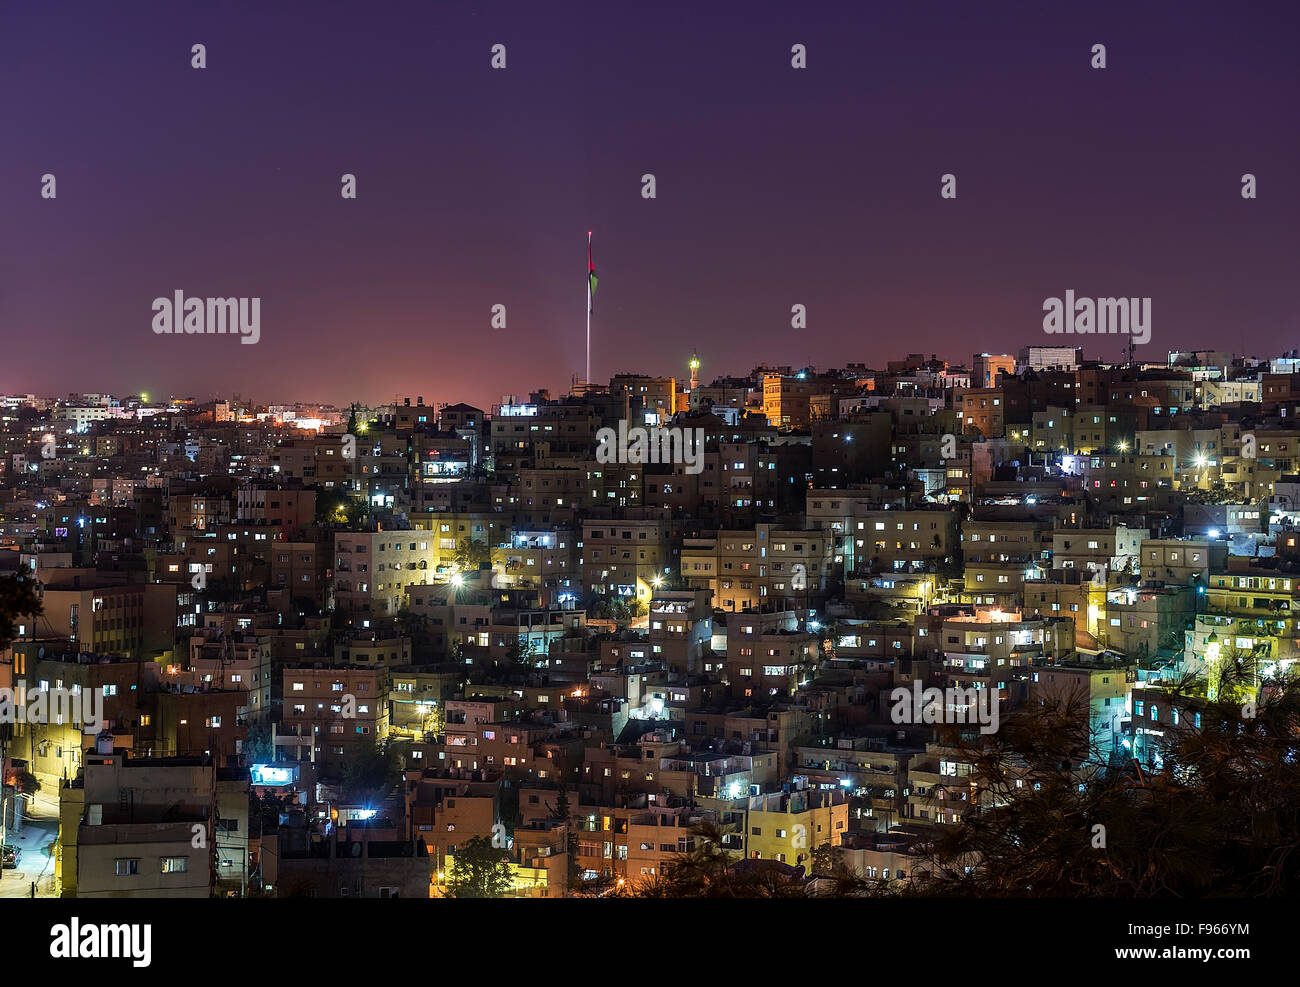 Amman by Night Stock Photo